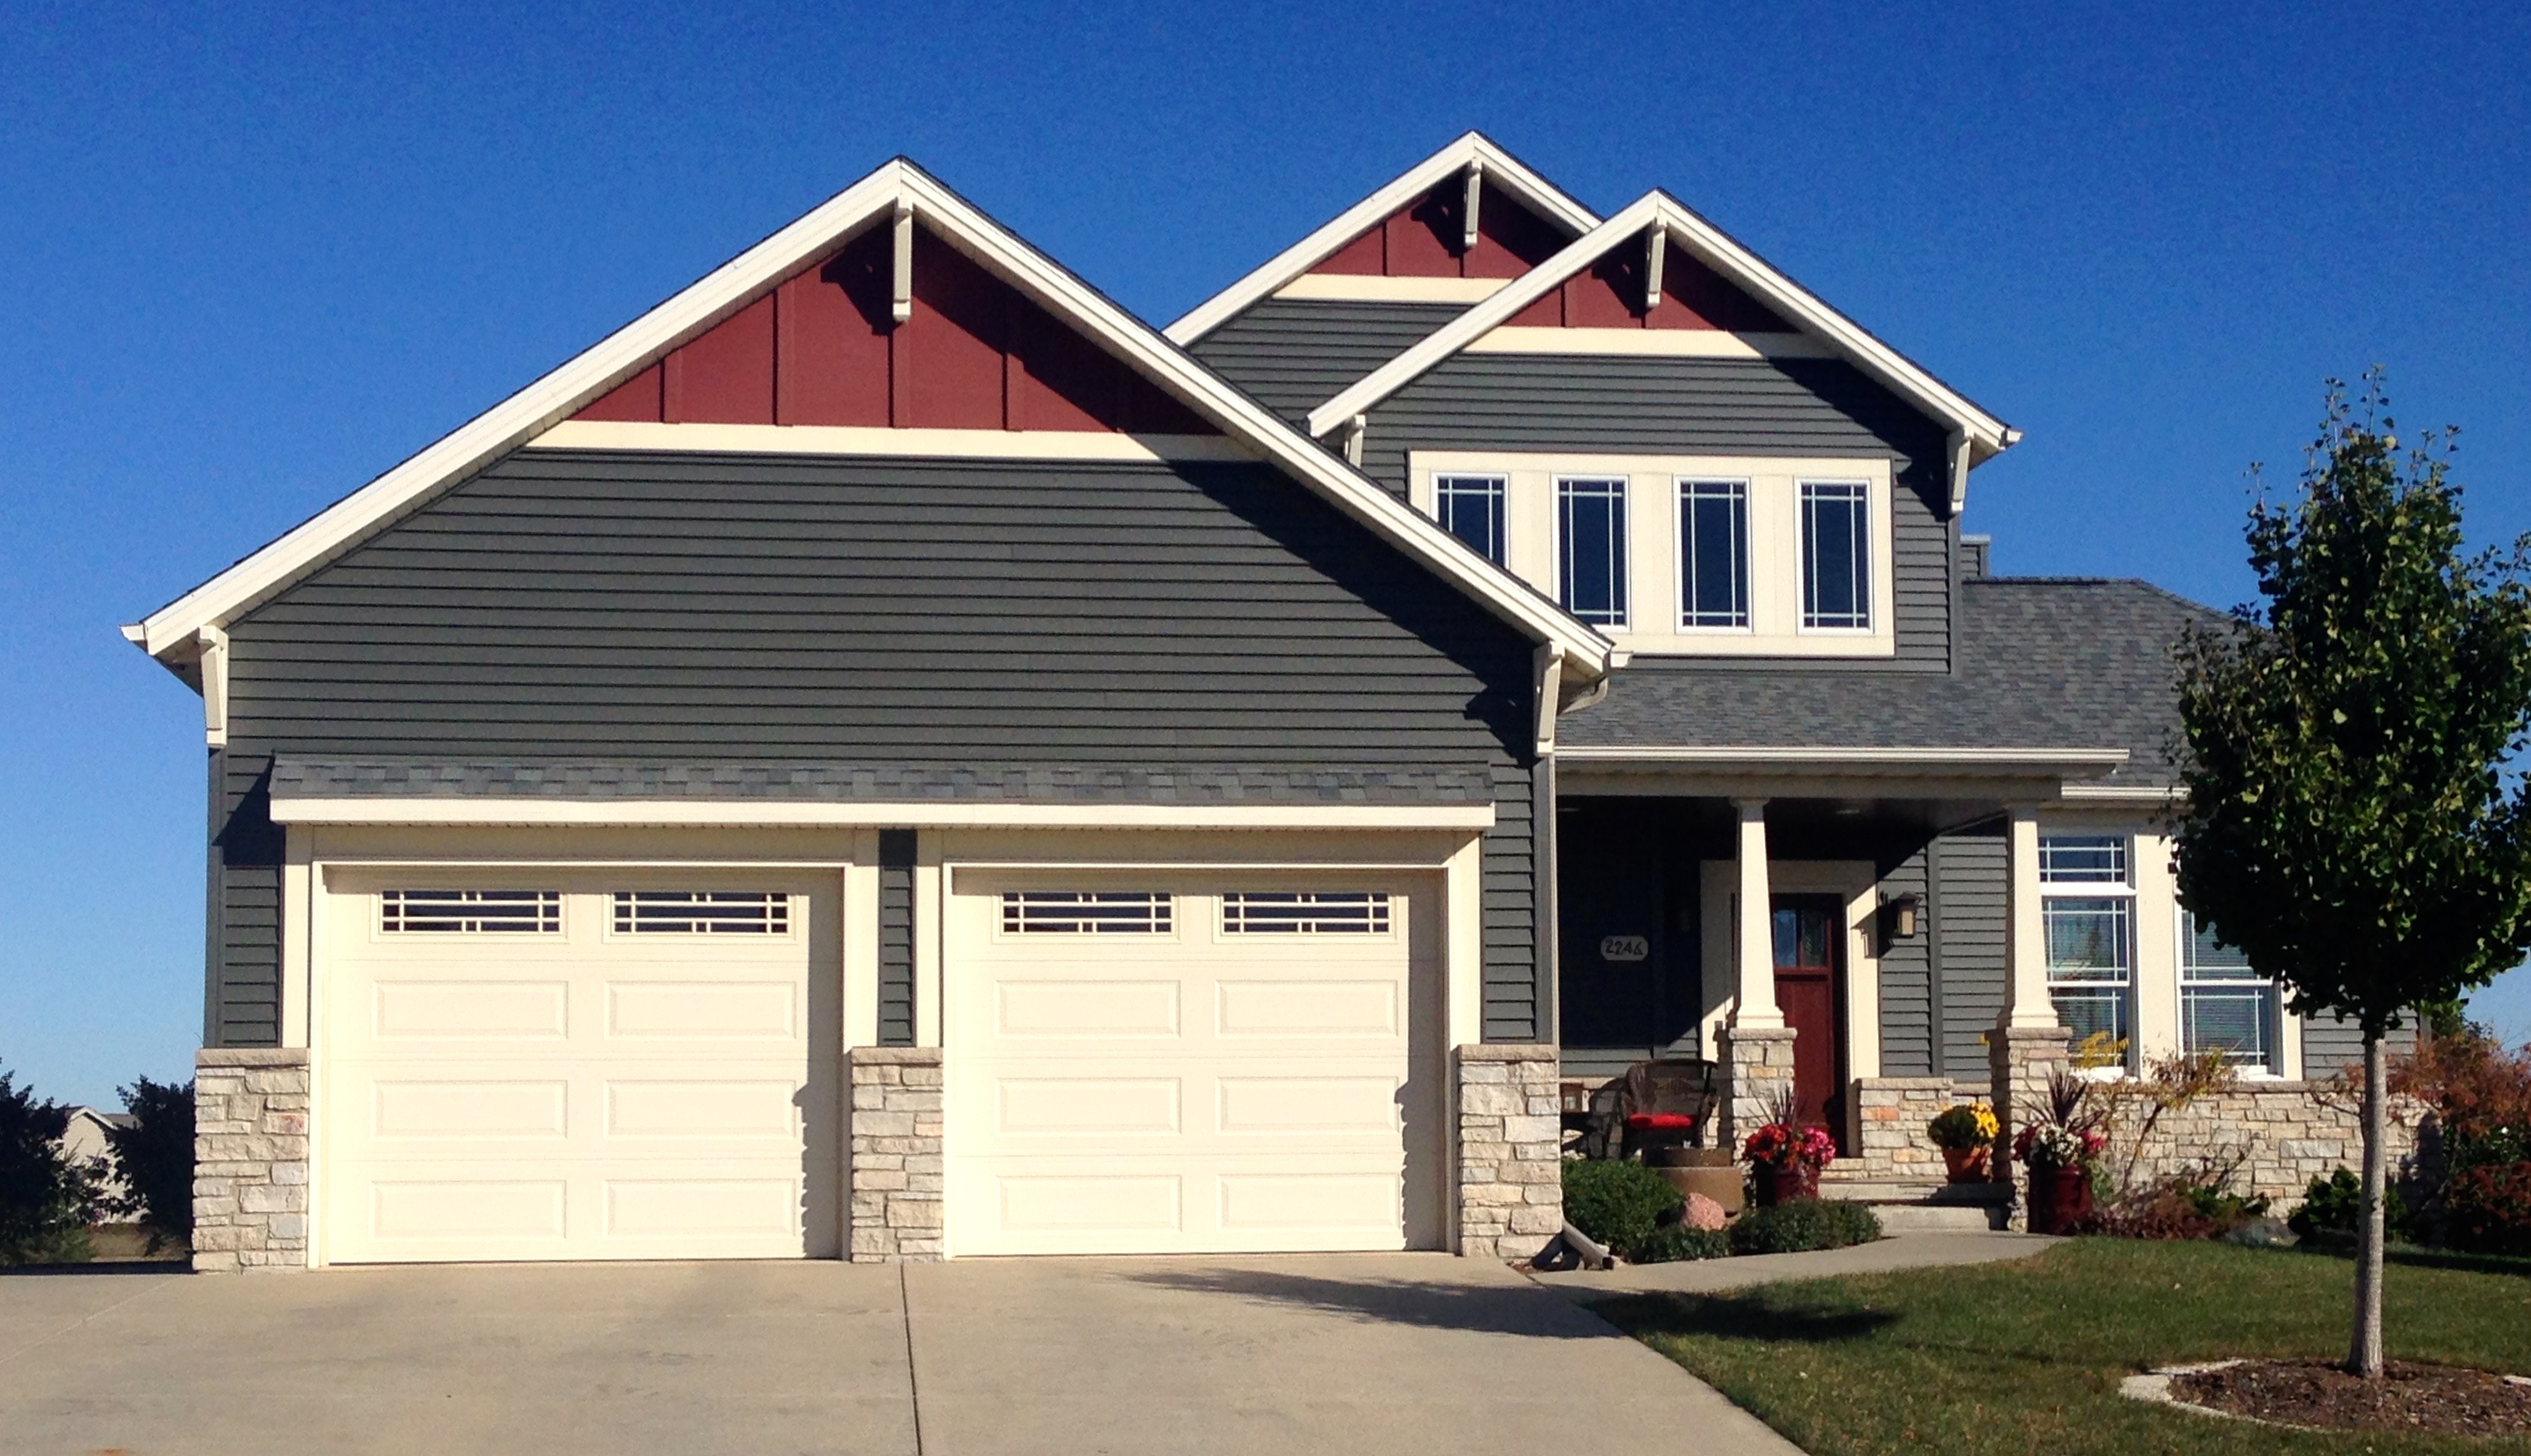 Mastic quest siding in misty shadow red decorative gables Gable accents